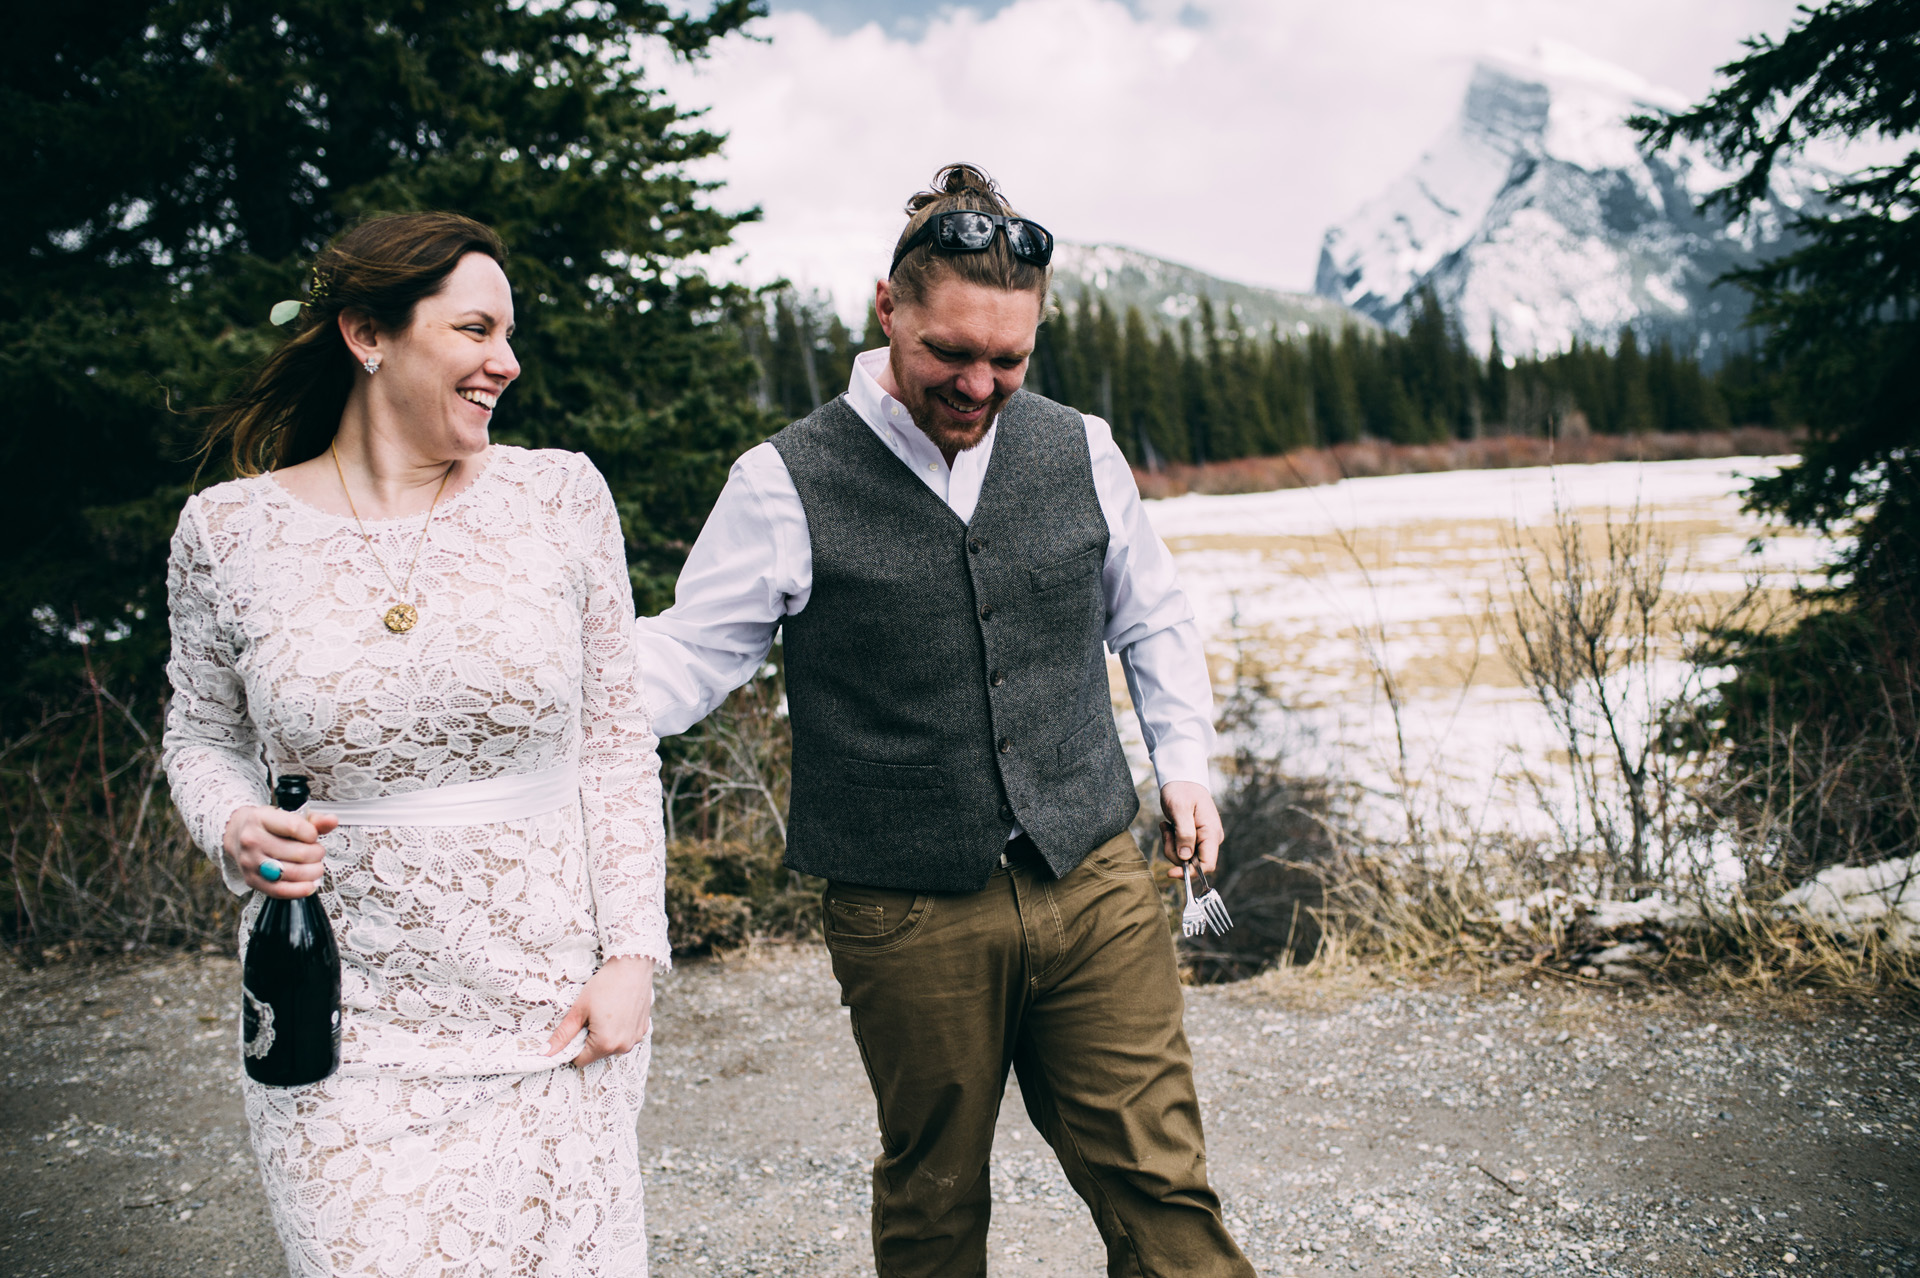 banff-wedding-photographer-60